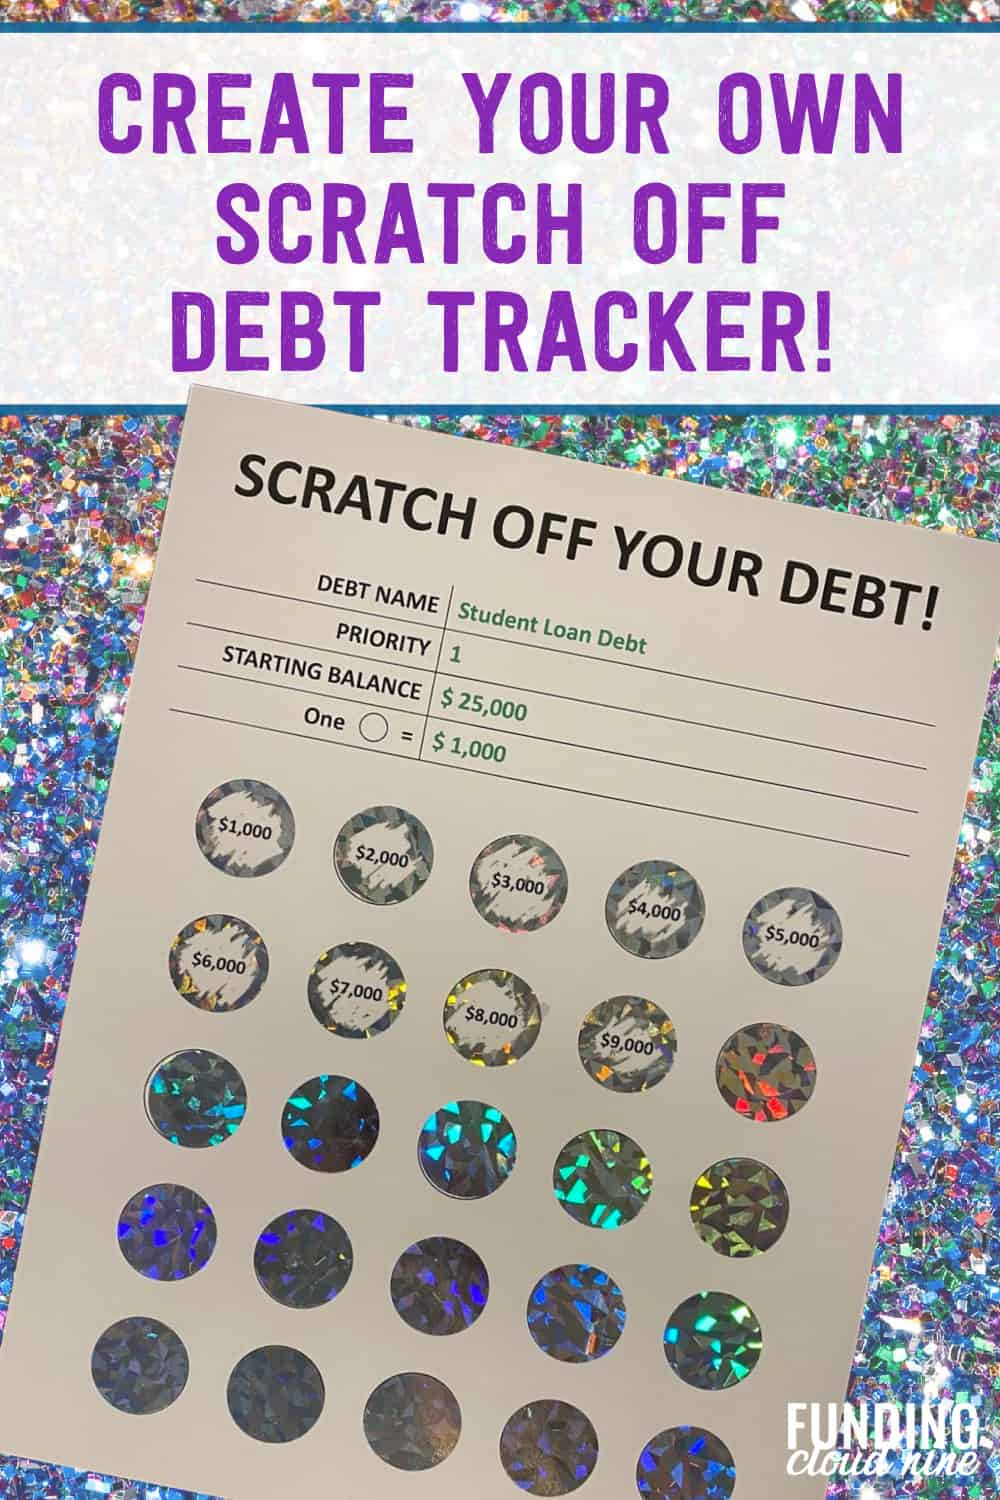 Pay off your debt fast with the help of a debt tracker, like this handmade scratch-off debt tracker